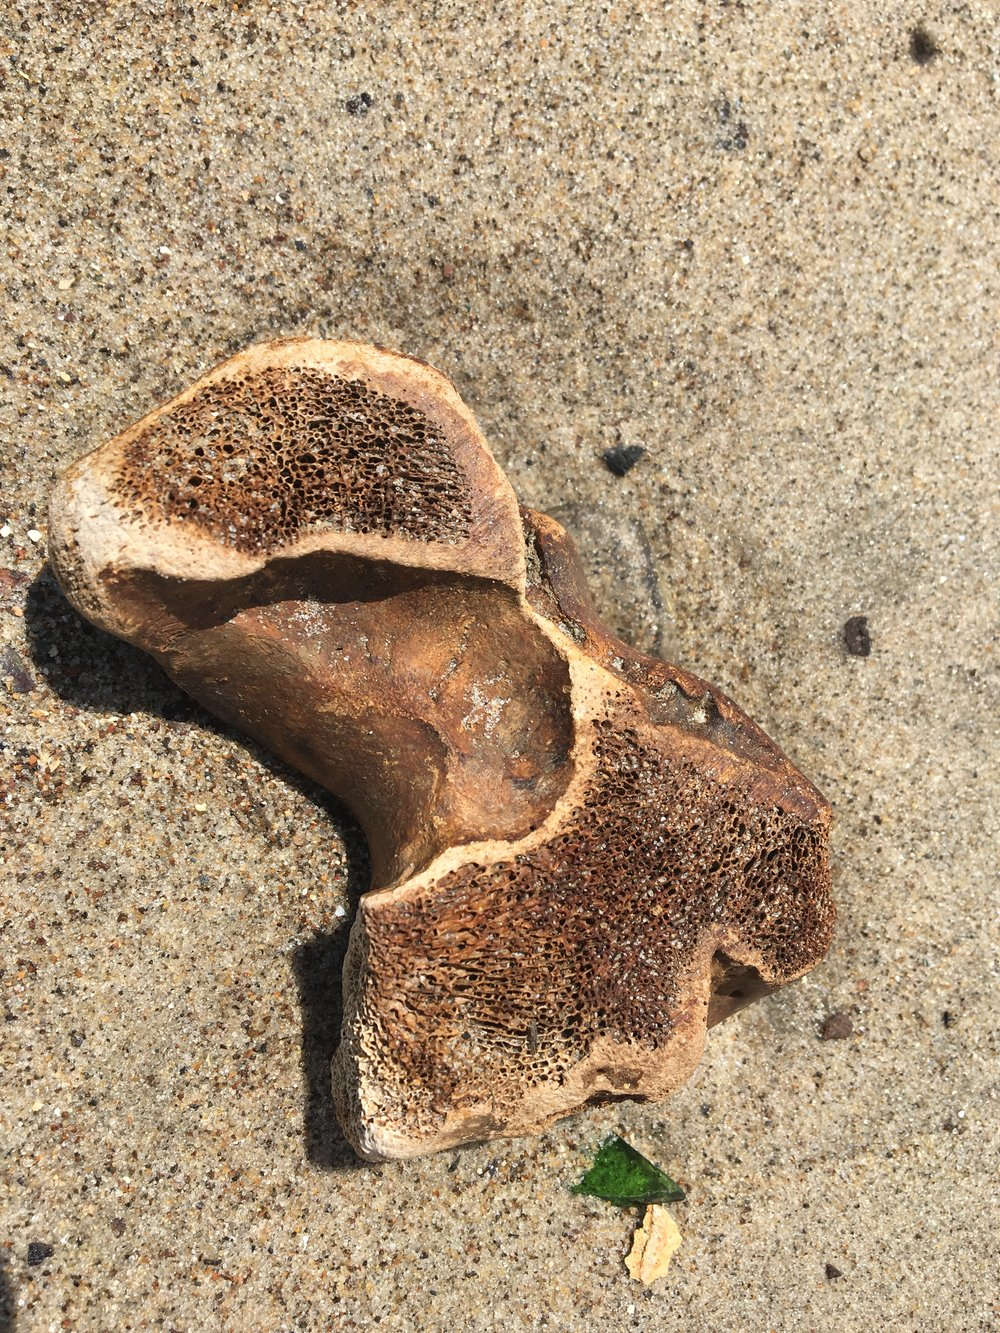 Likely a horse bone found buried in the sand.